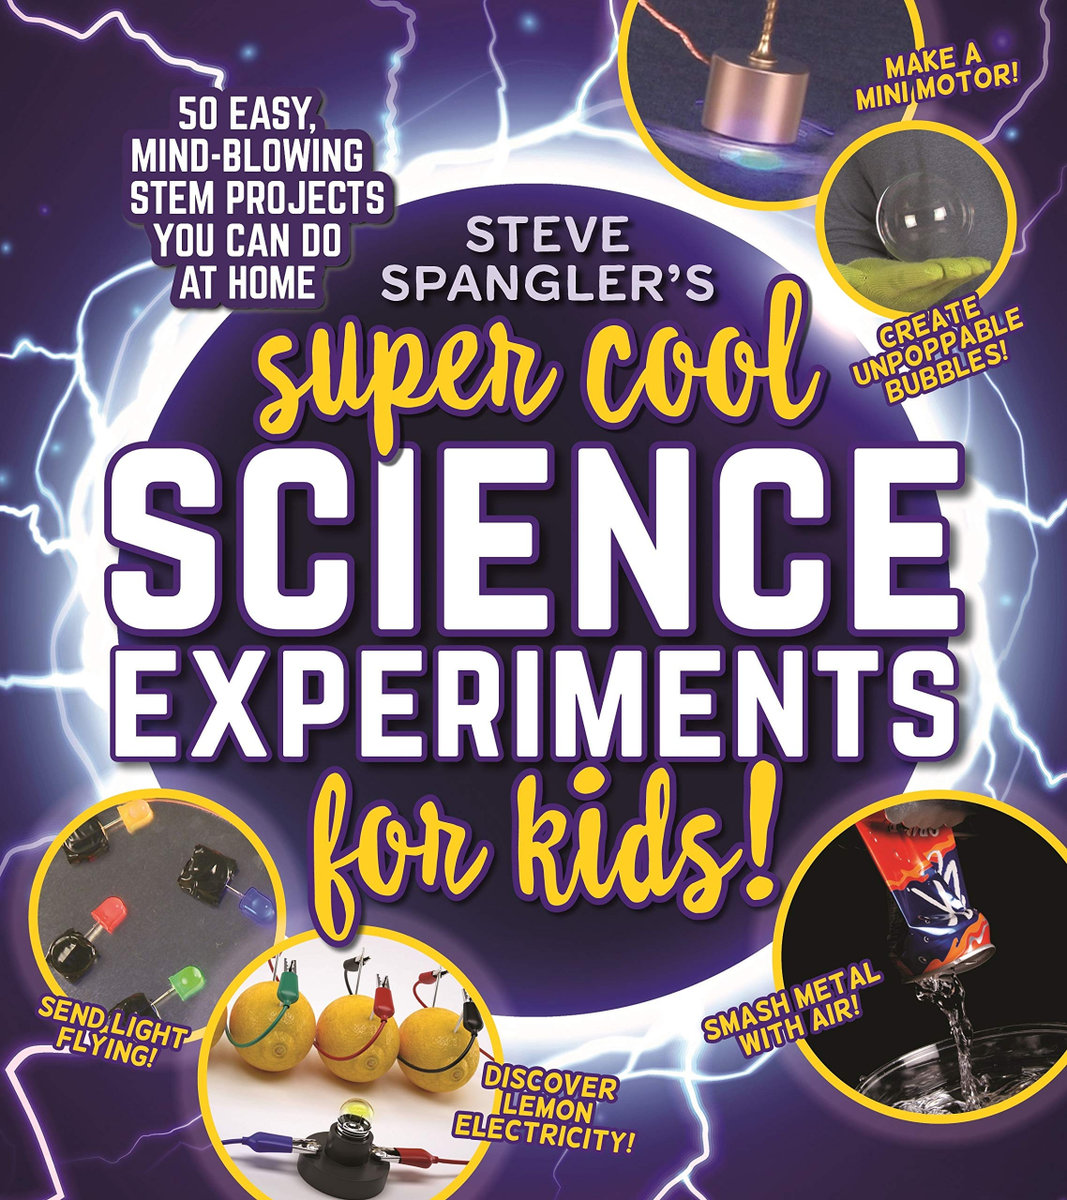 Steve Spangler's Super Cool Science Experiments for Kids / pictures of simple science experiments engulfed in lightning